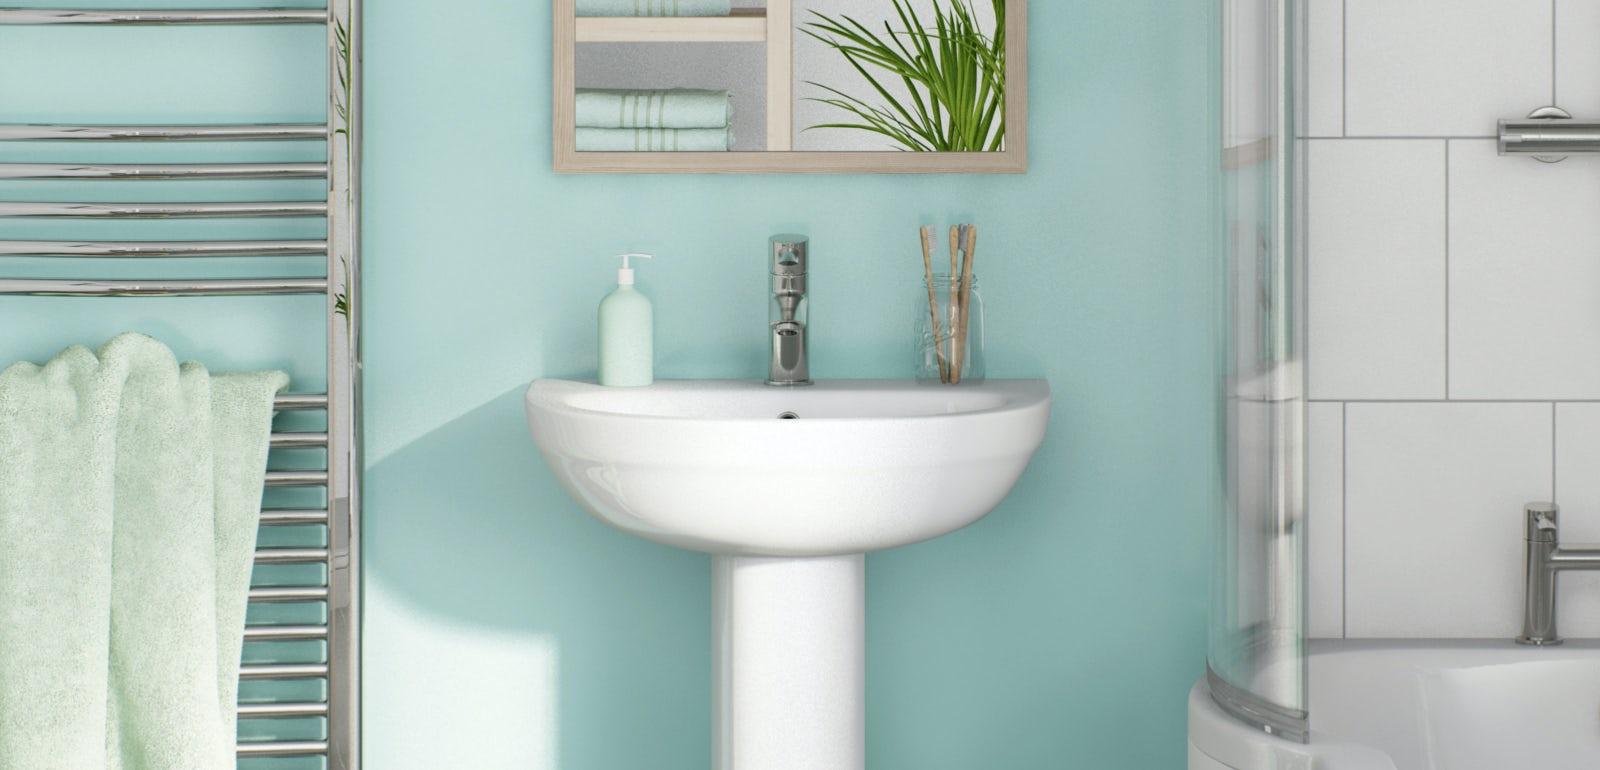 6 things to consider when choosing your basin